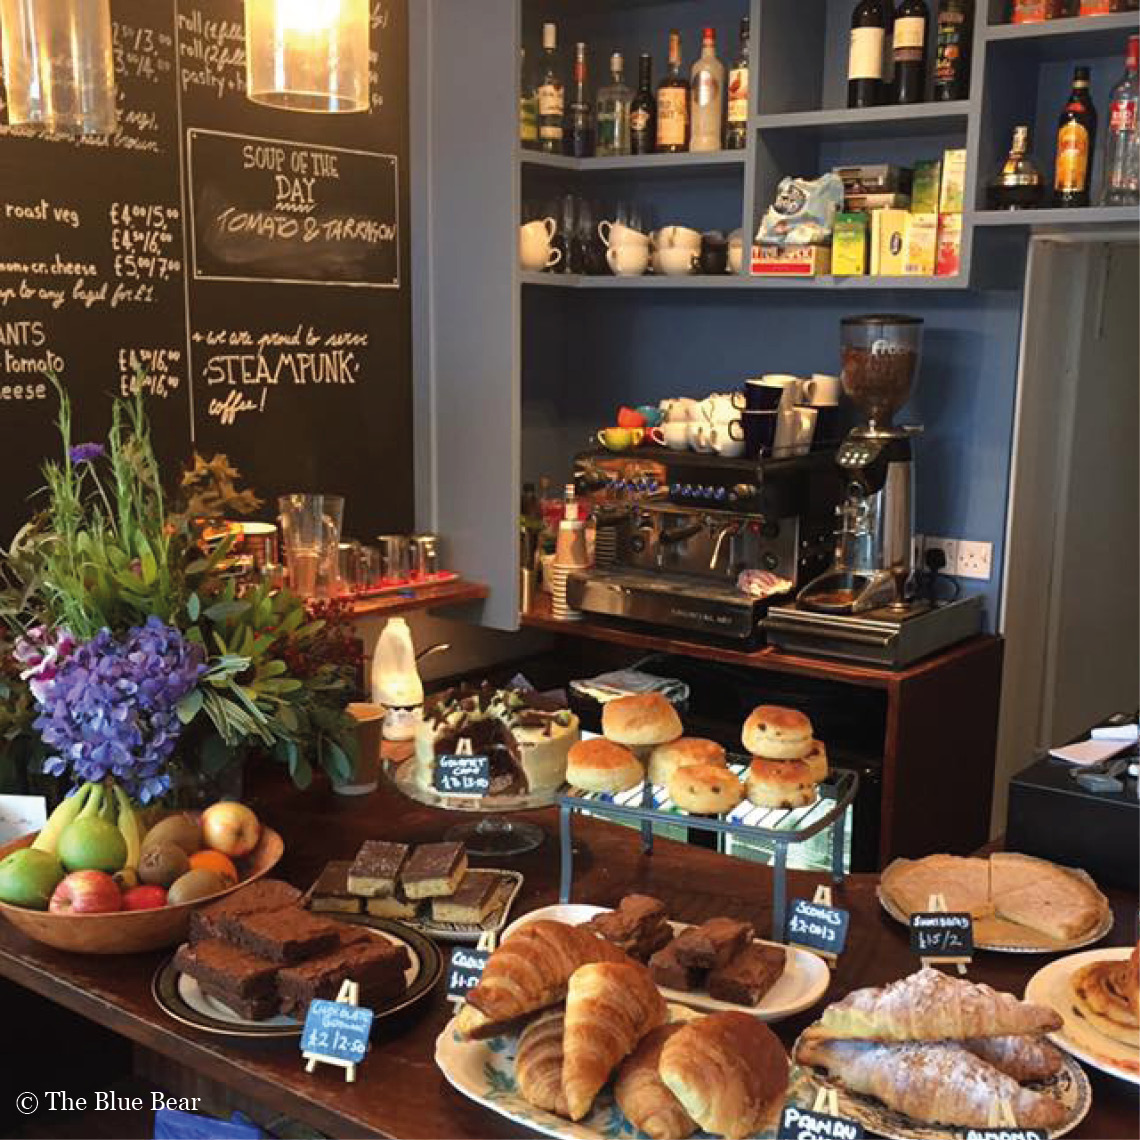 Best brunch in Edinburgh - picture of scones, pastries and fruit